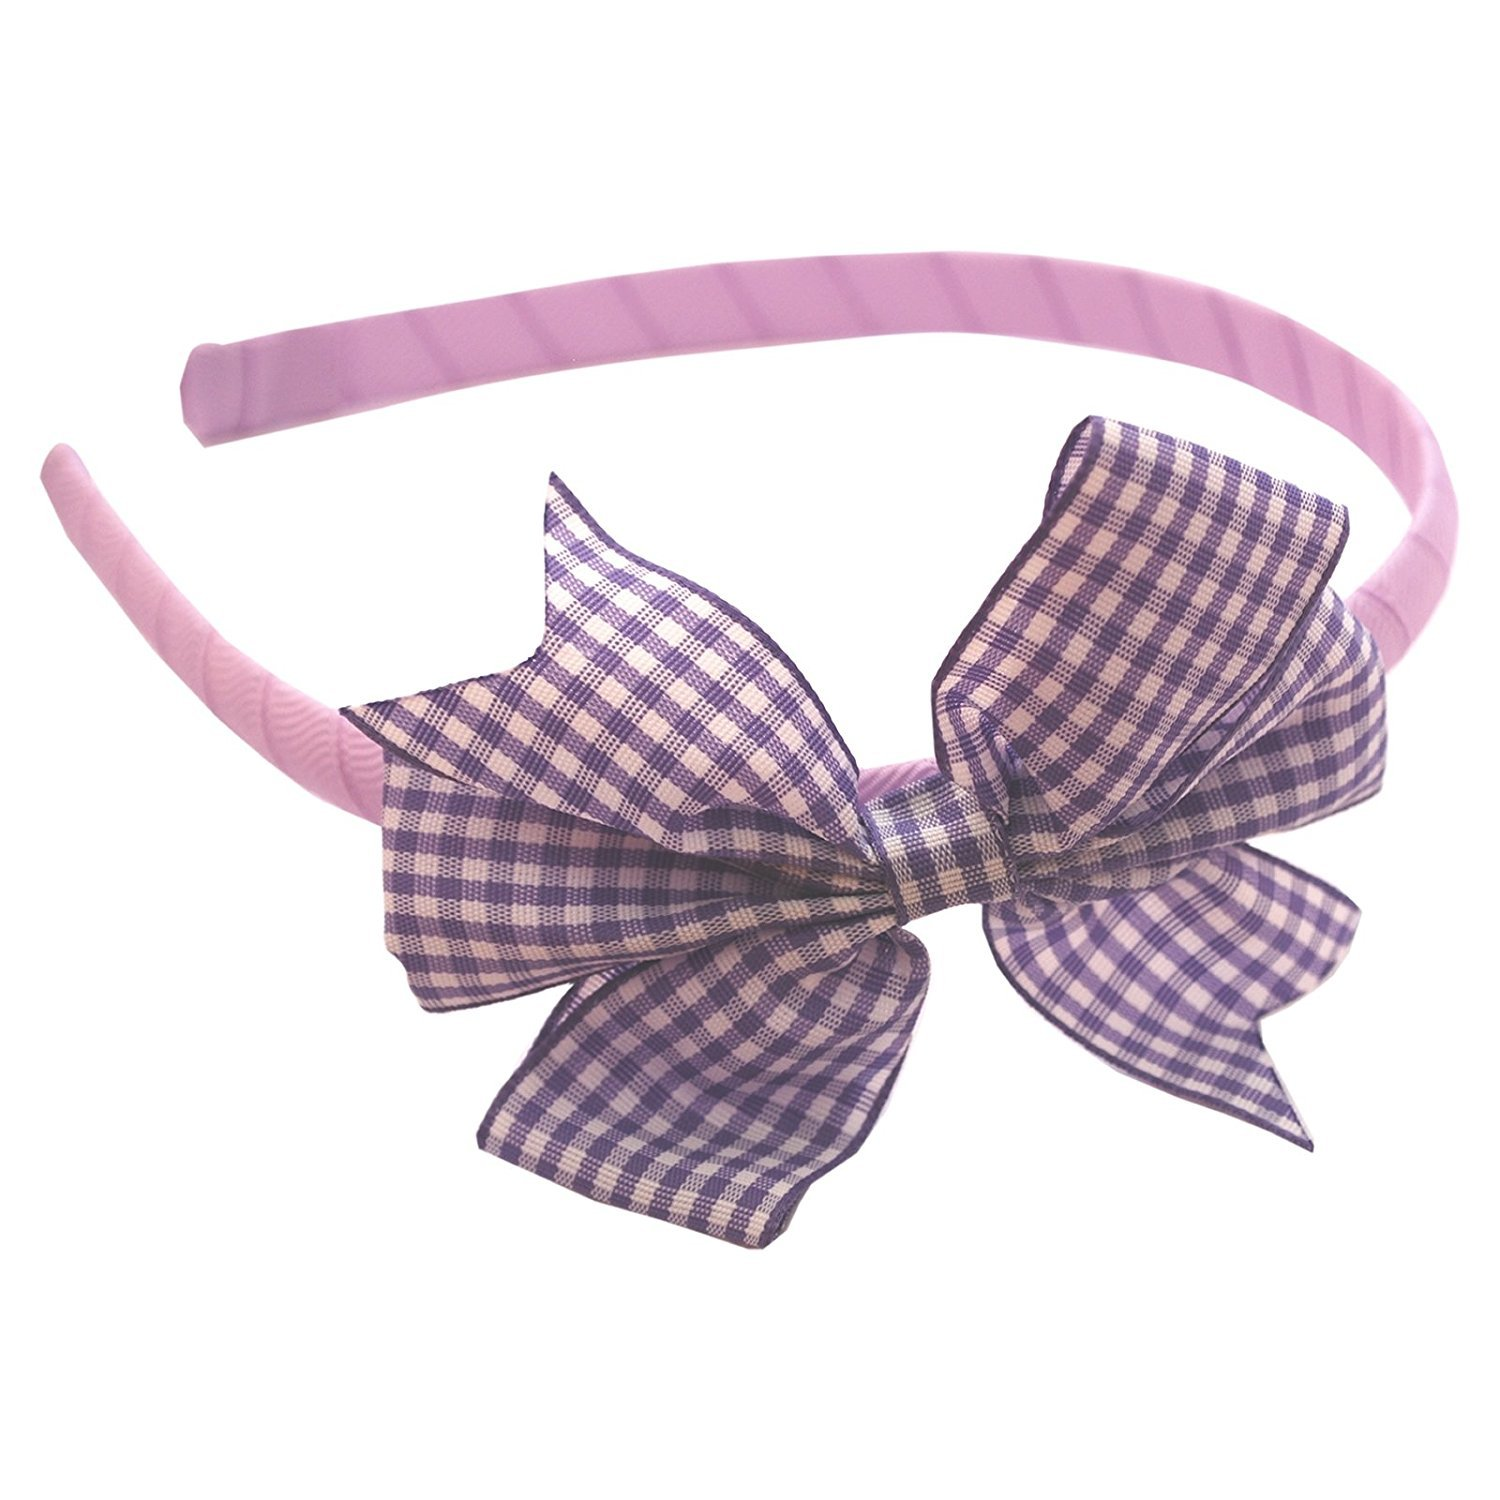 Hair Band Alice Head Band with Gingham Flat Bow School Uniform Accessories